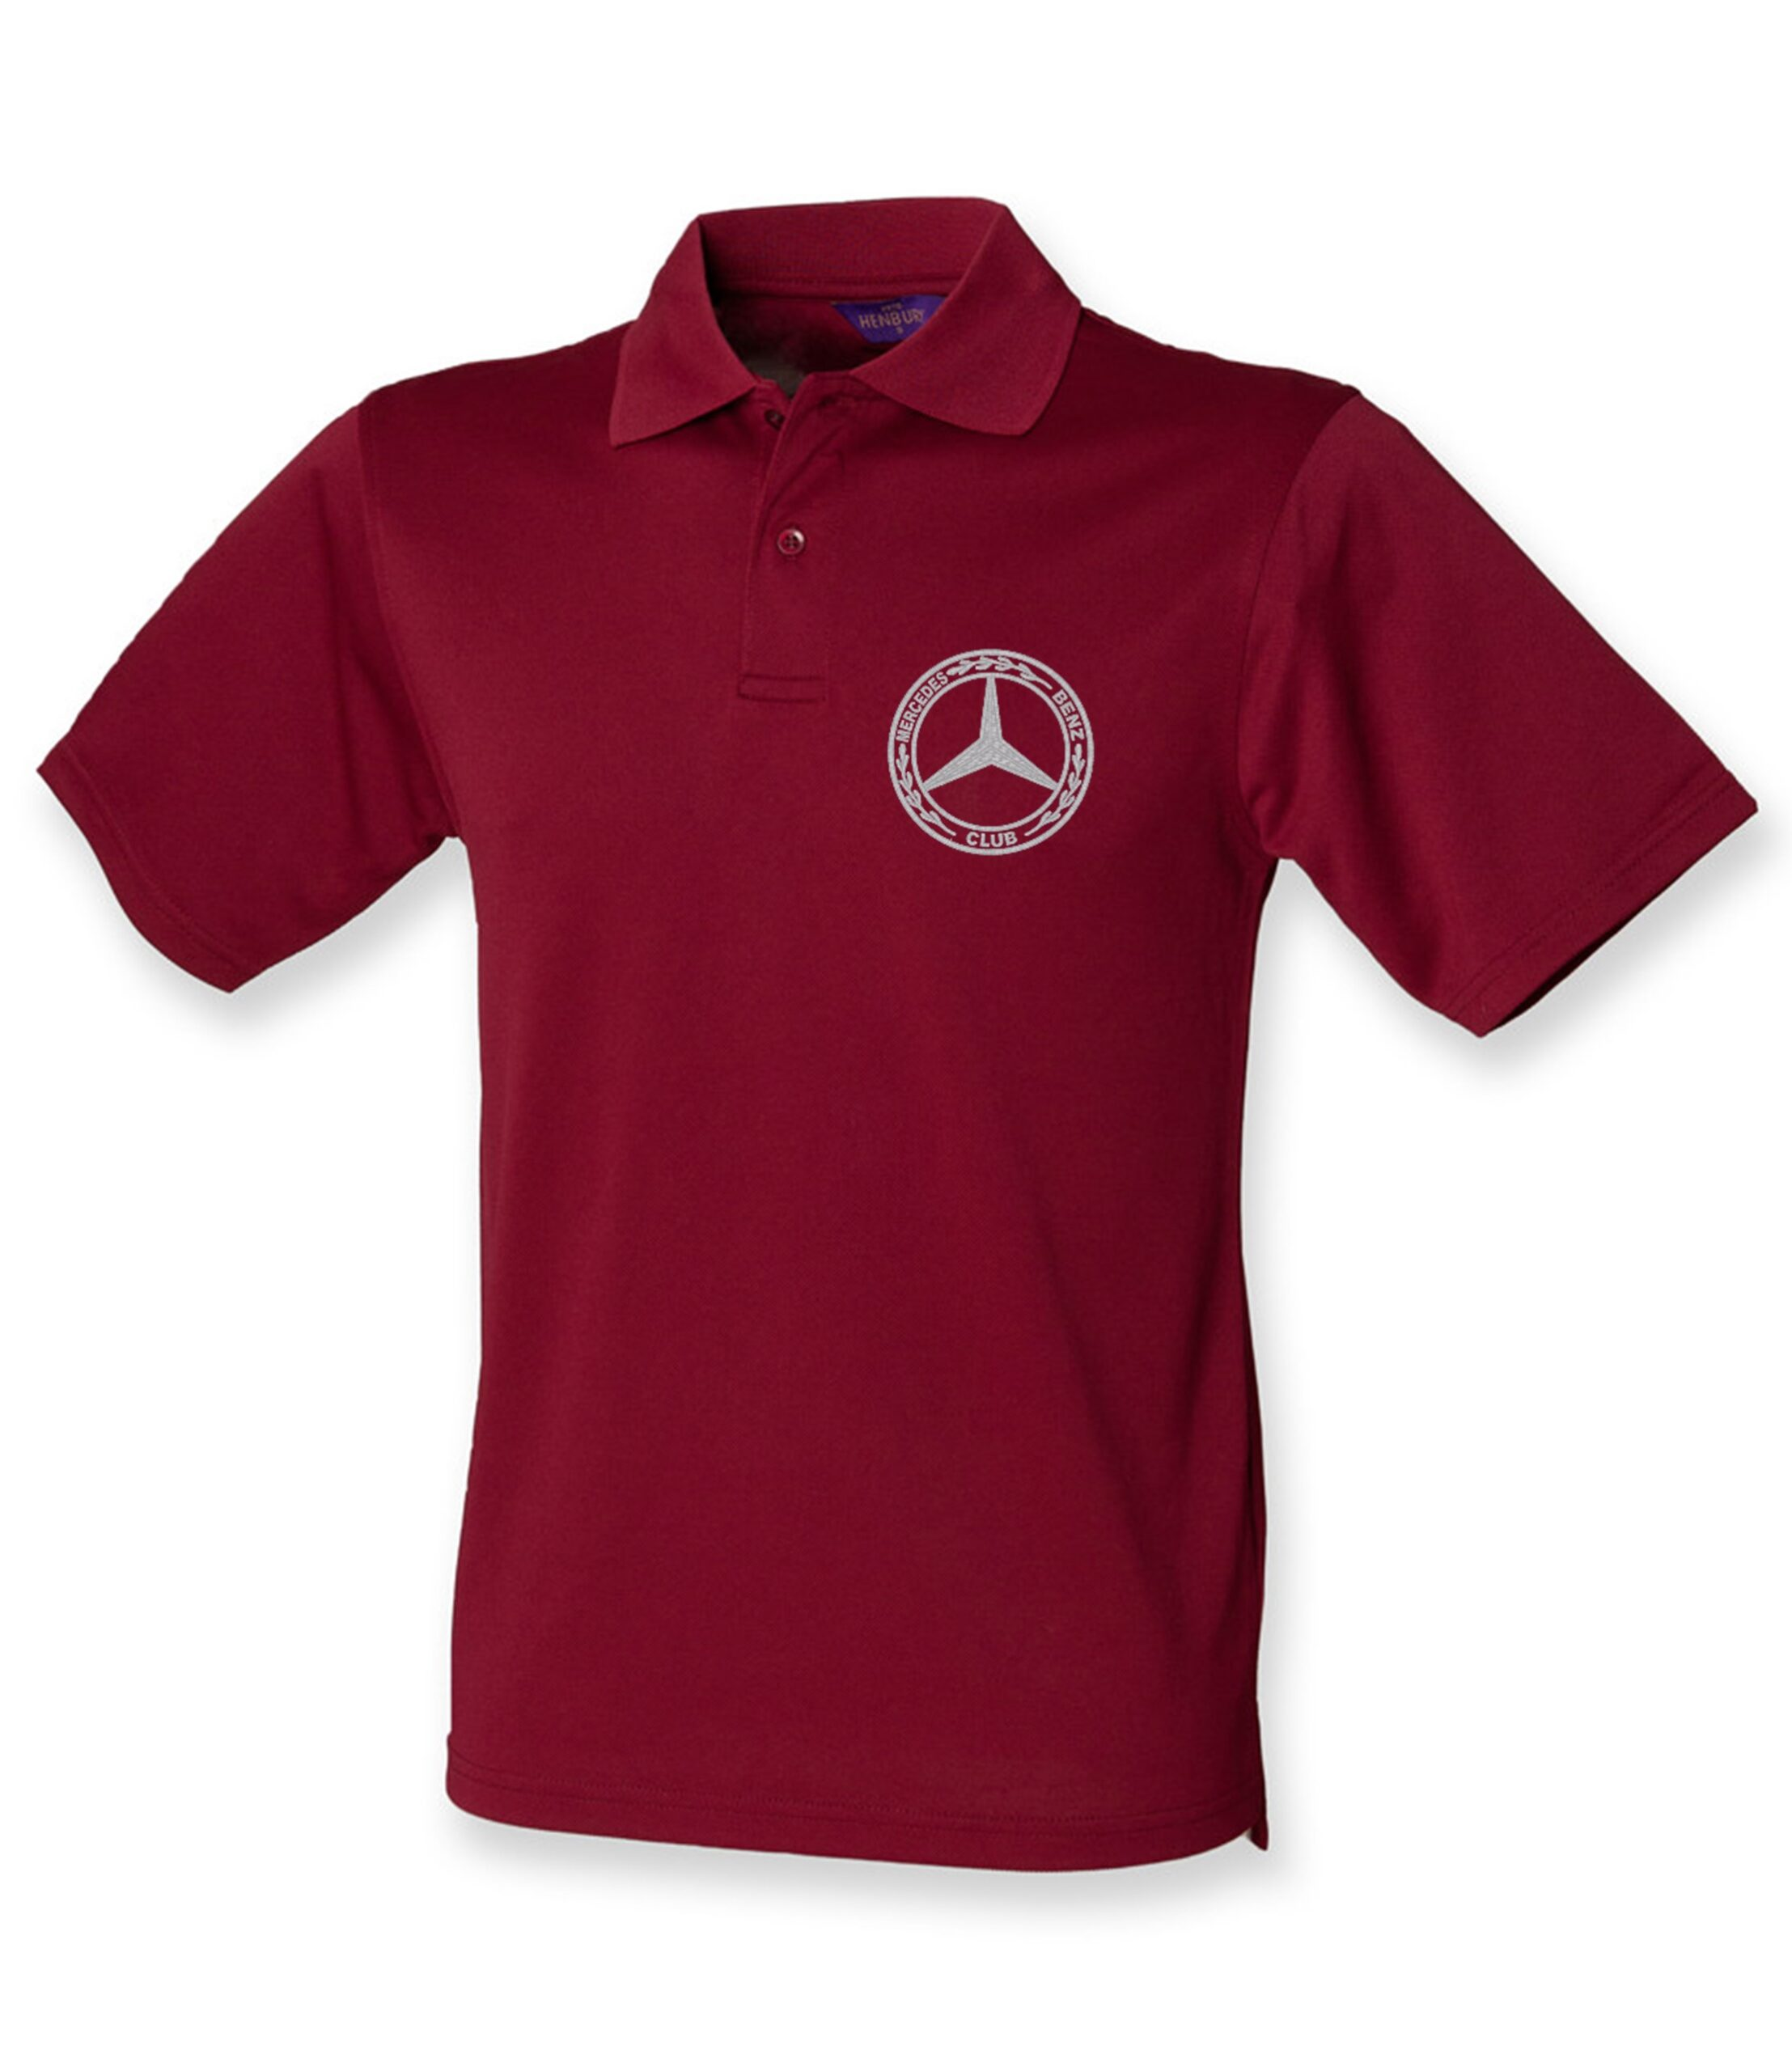 Mercedes-Benz Club Wicking Pique Polo Shirt Burgundy